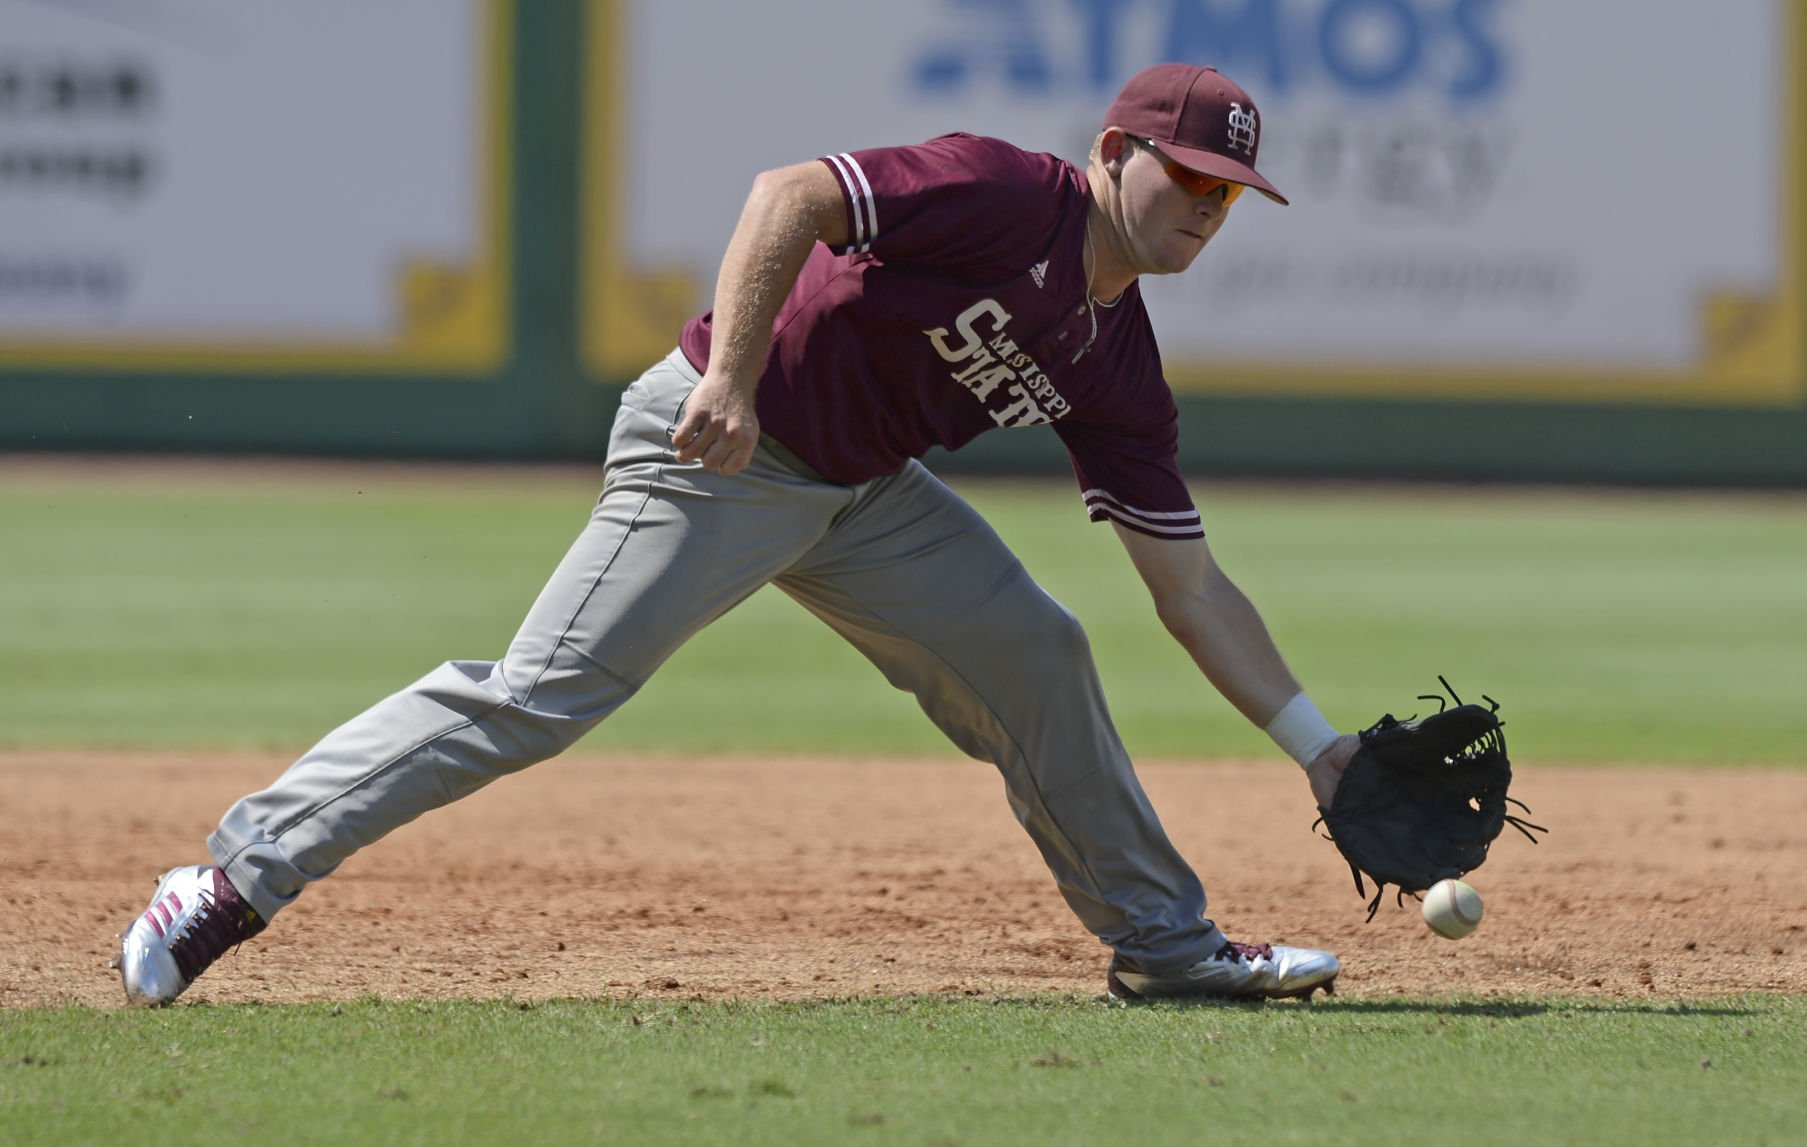 NCAA Baseball: Janca hits walk-off single, Texas A&M beats Davidson 7